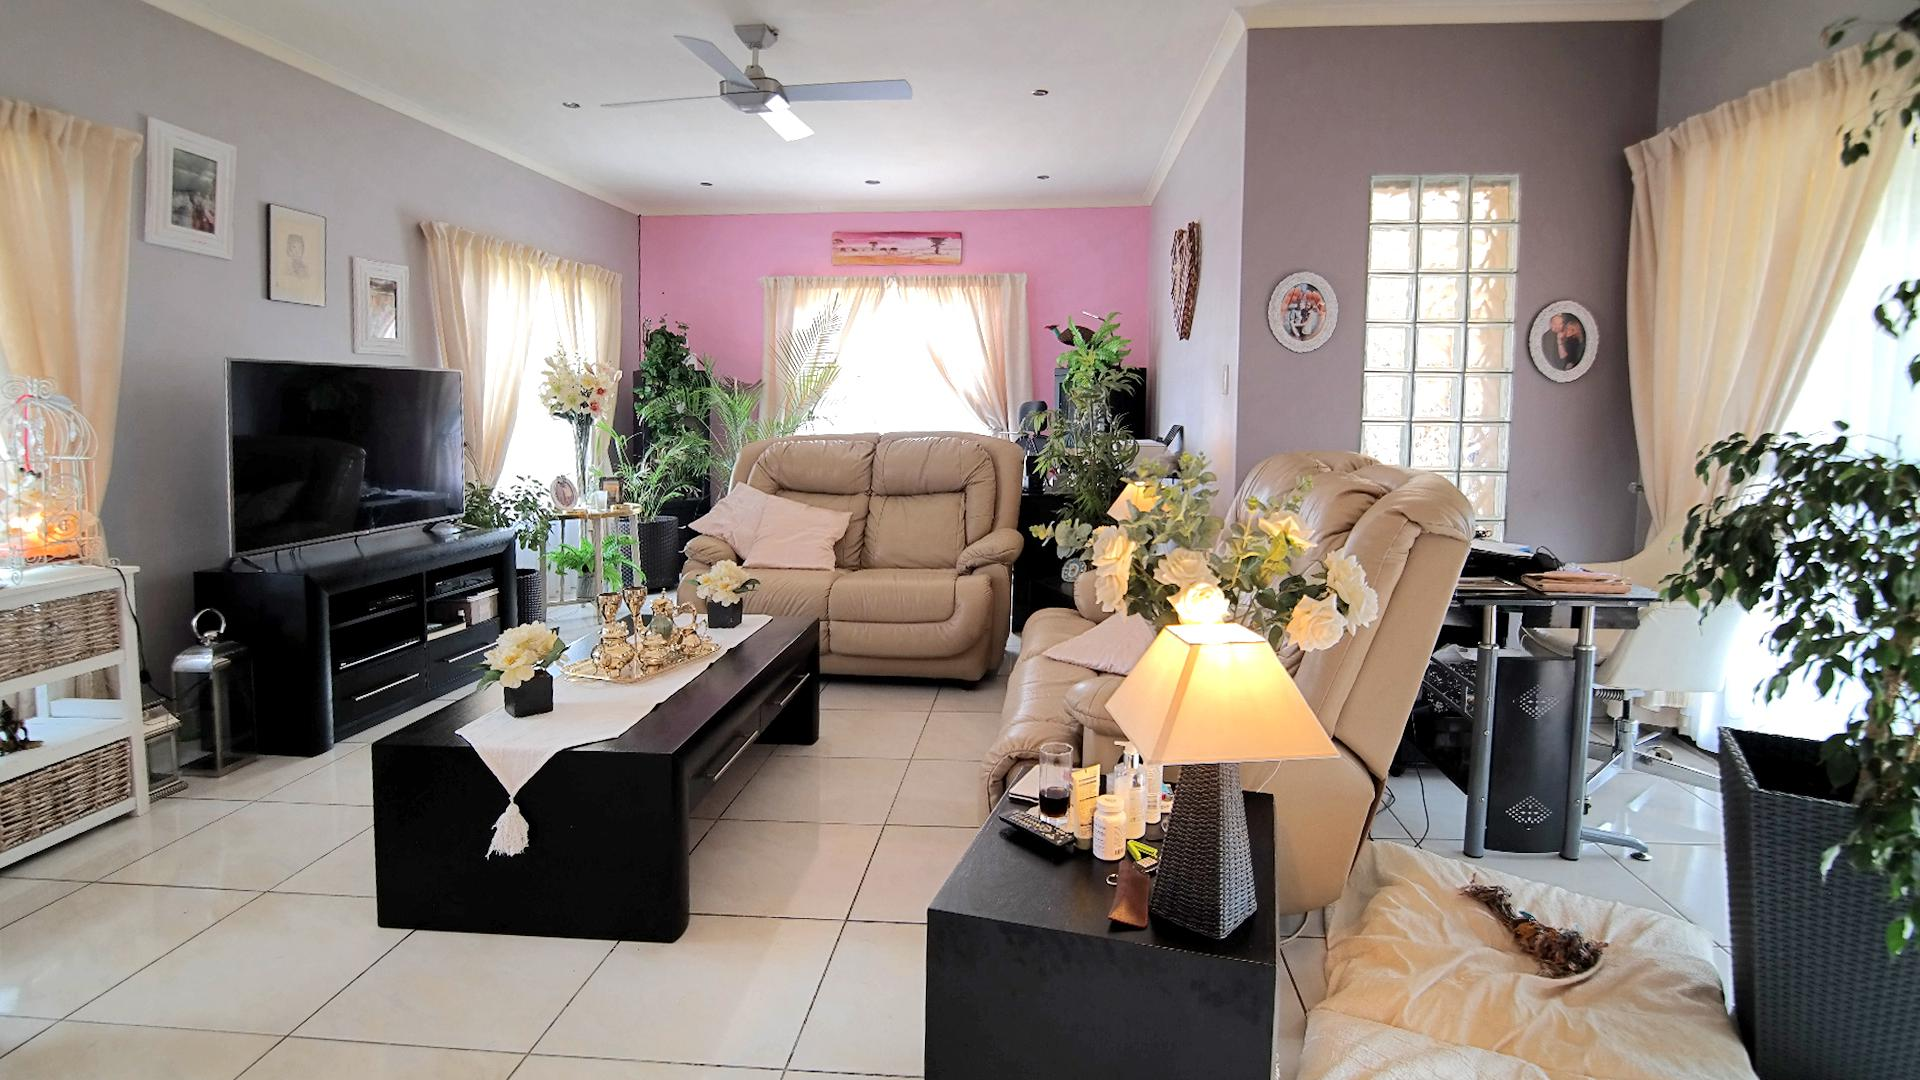 3 Bedroom House for sale in Montana ENT0066308 : photo#8